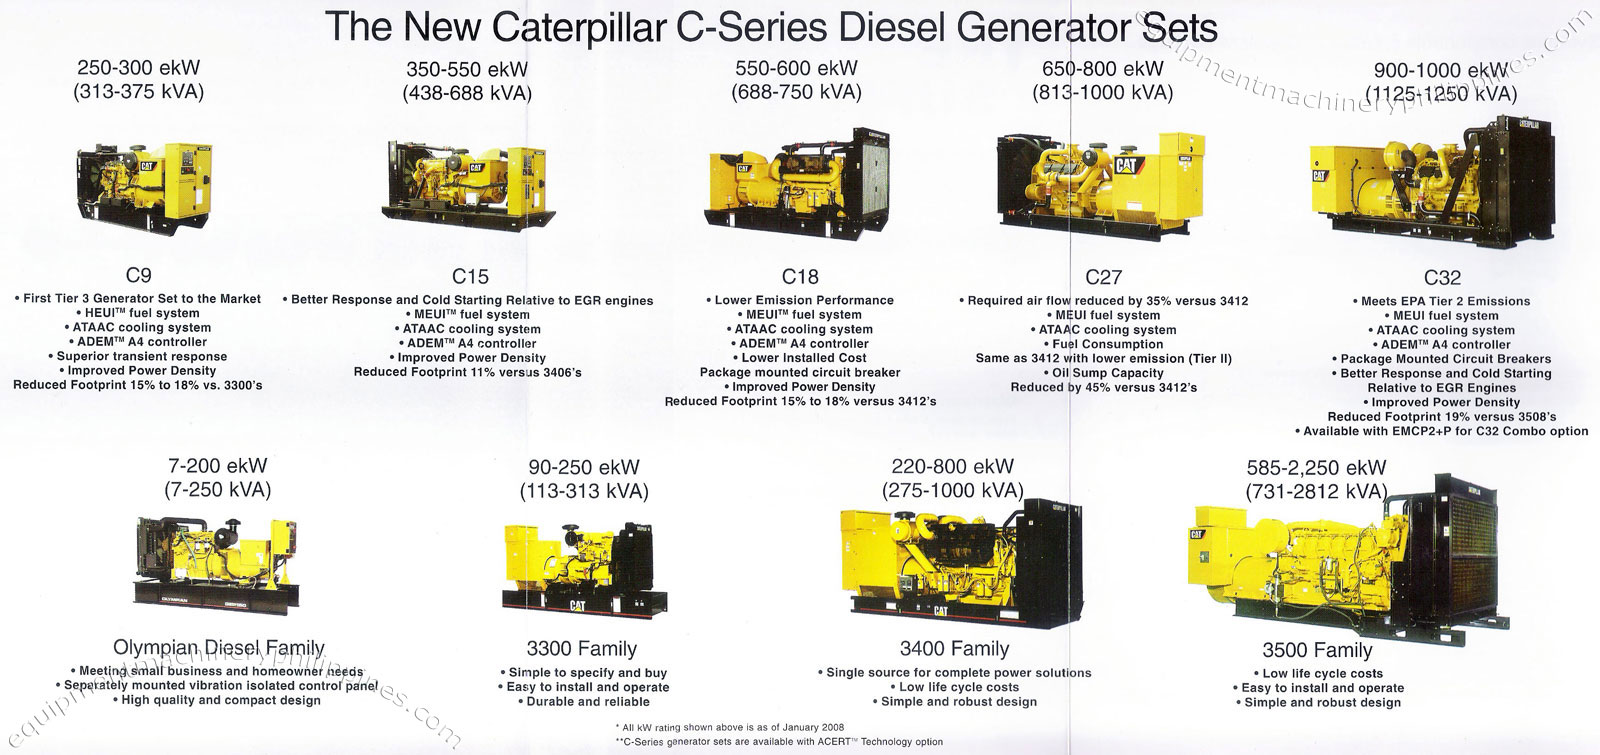 02 Caterpillar C Series Diesel Generator Sets also Modern Bahay Kubo Designs Philippines likewise Parol further Simbang Gabi Schedule in addition Bamboo Houses Interior And Exterior Designs. on philippines house design